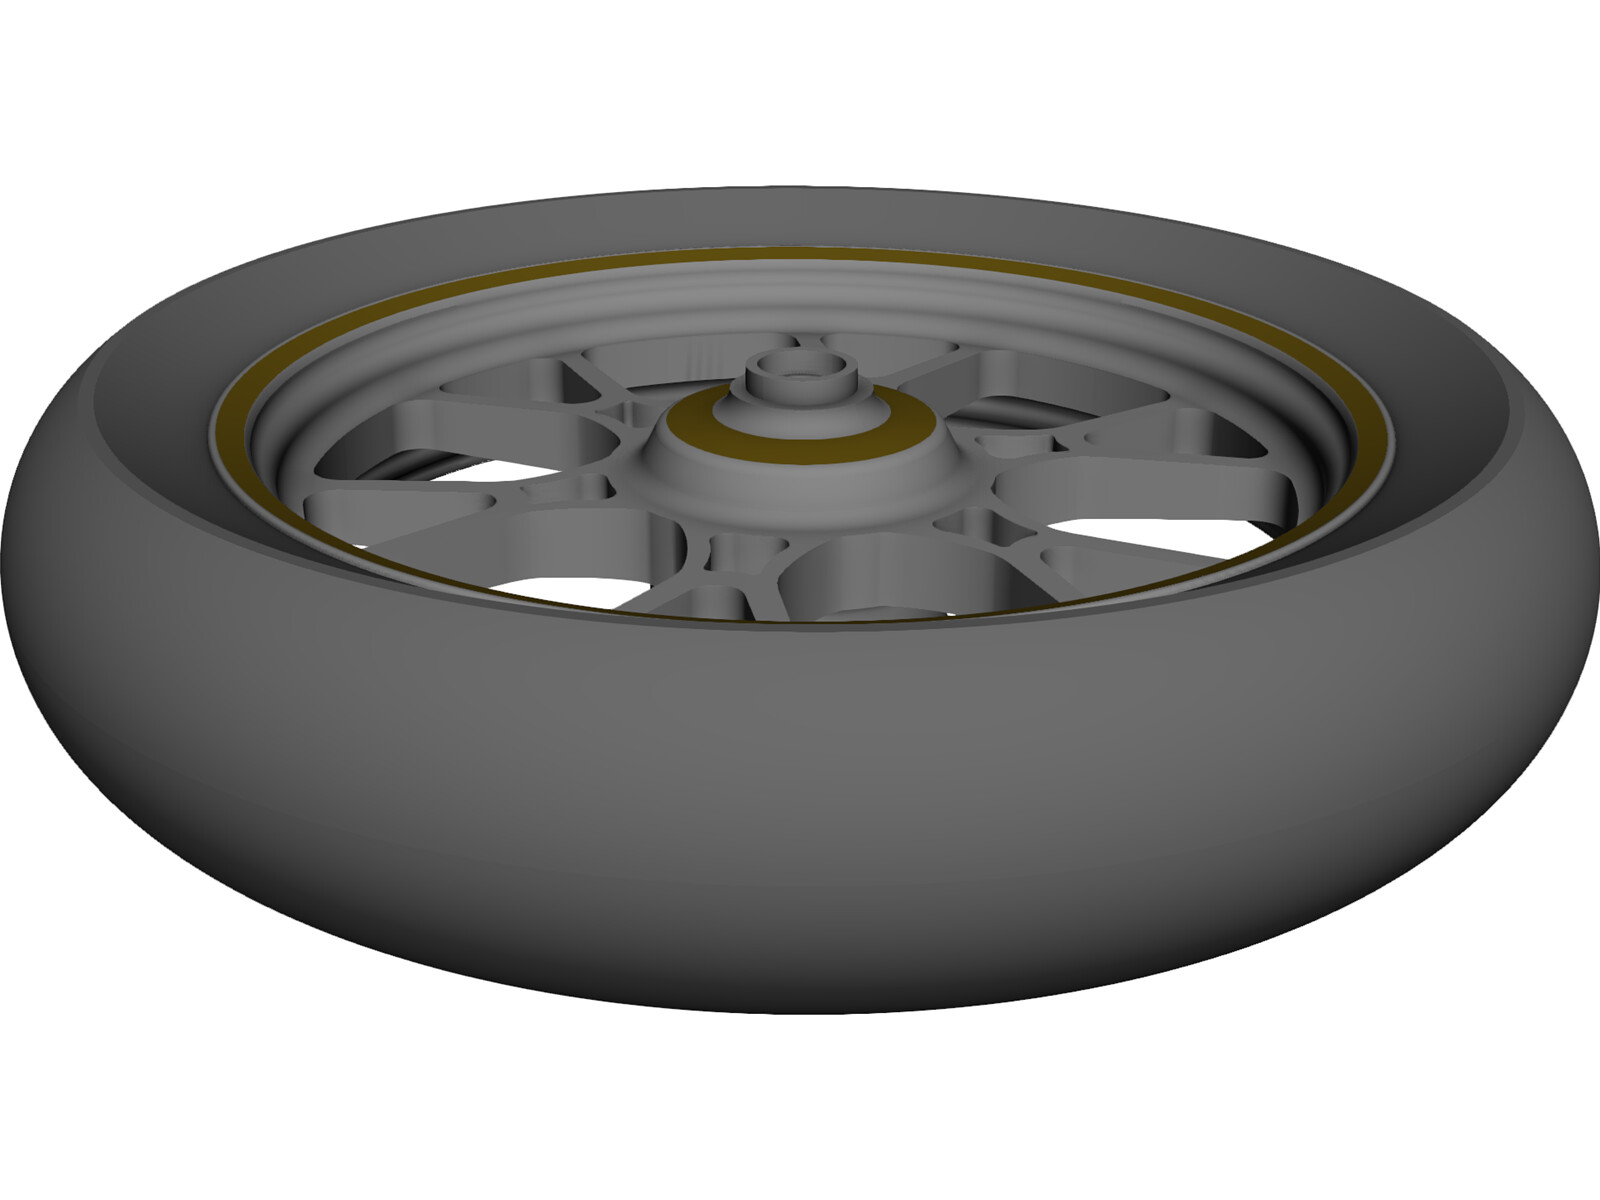 "Wheel Motorcycle Front 16"" 3D CAD Model"